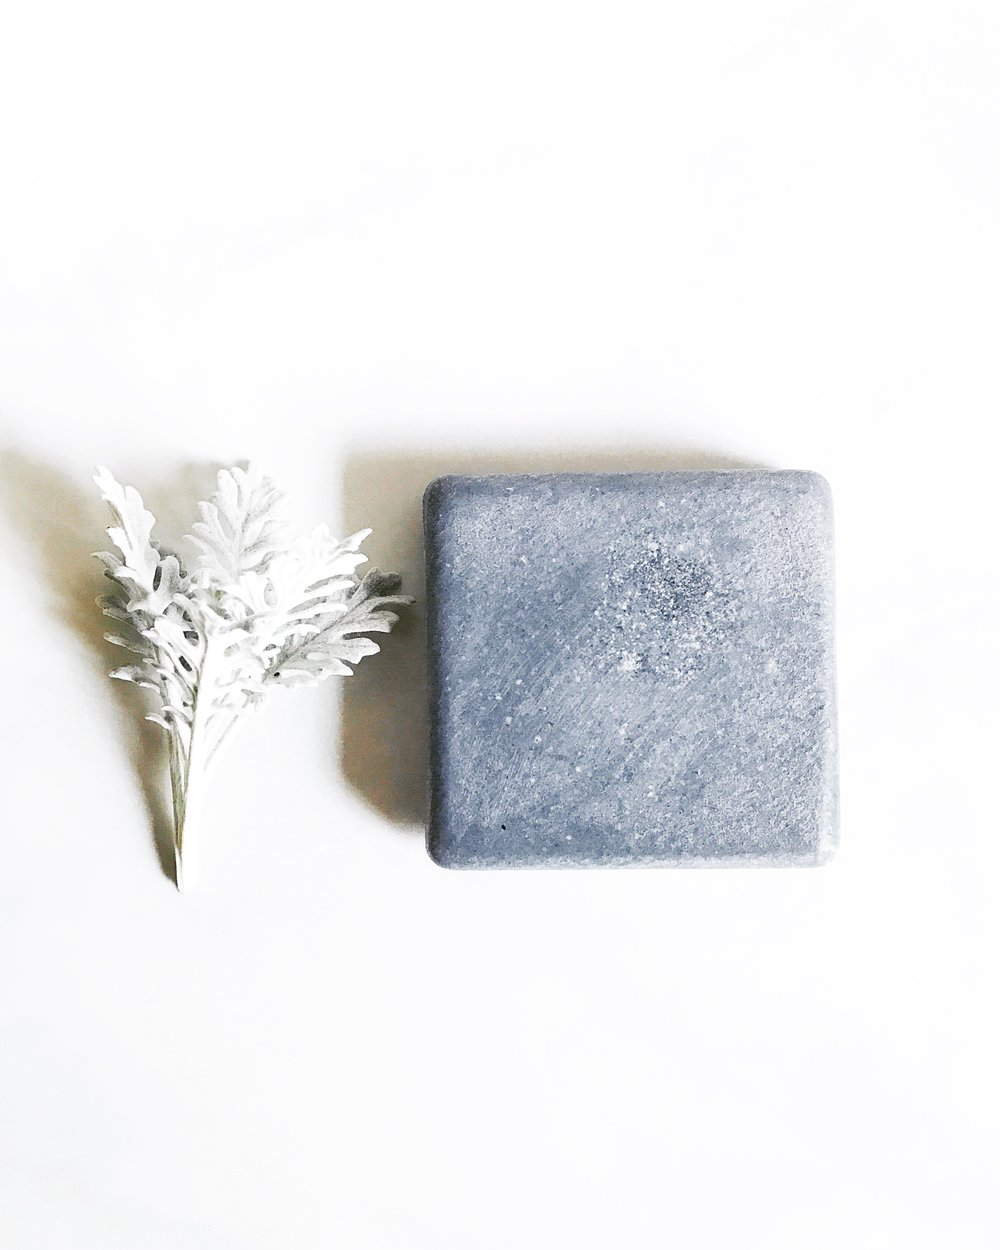 Charcoal + Kaolin Clay Bar | $8 |